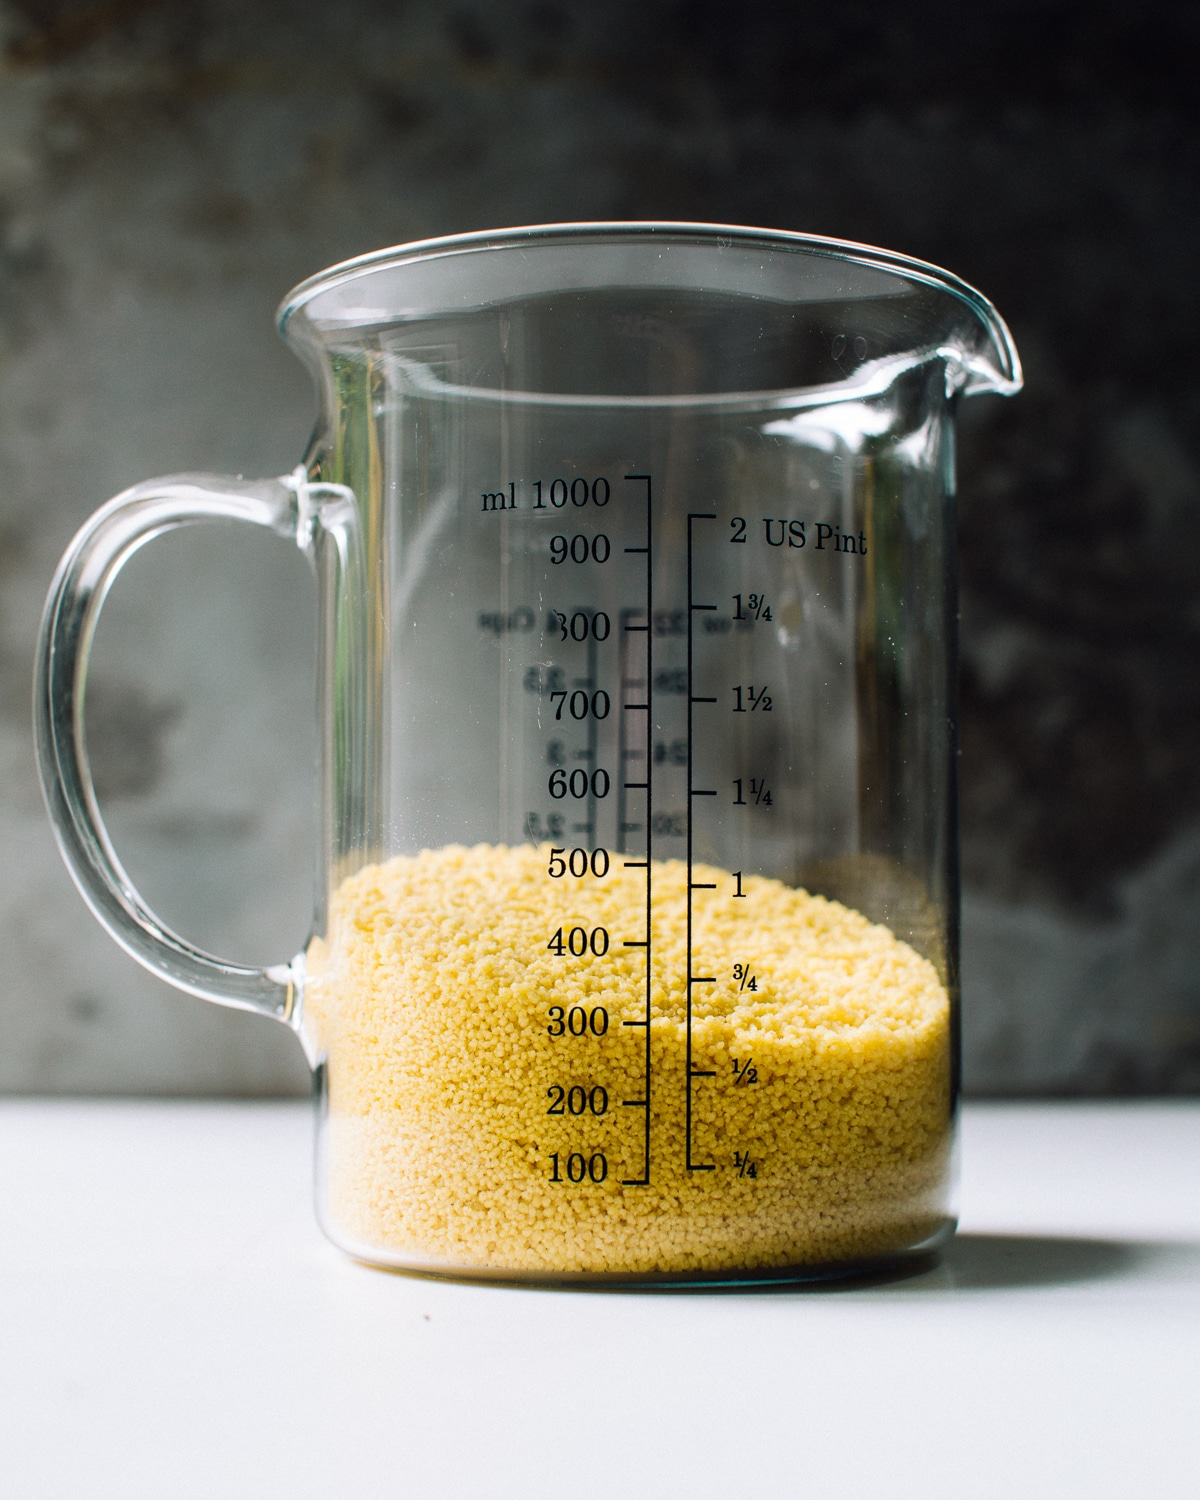 dry couscous in a measuring cup